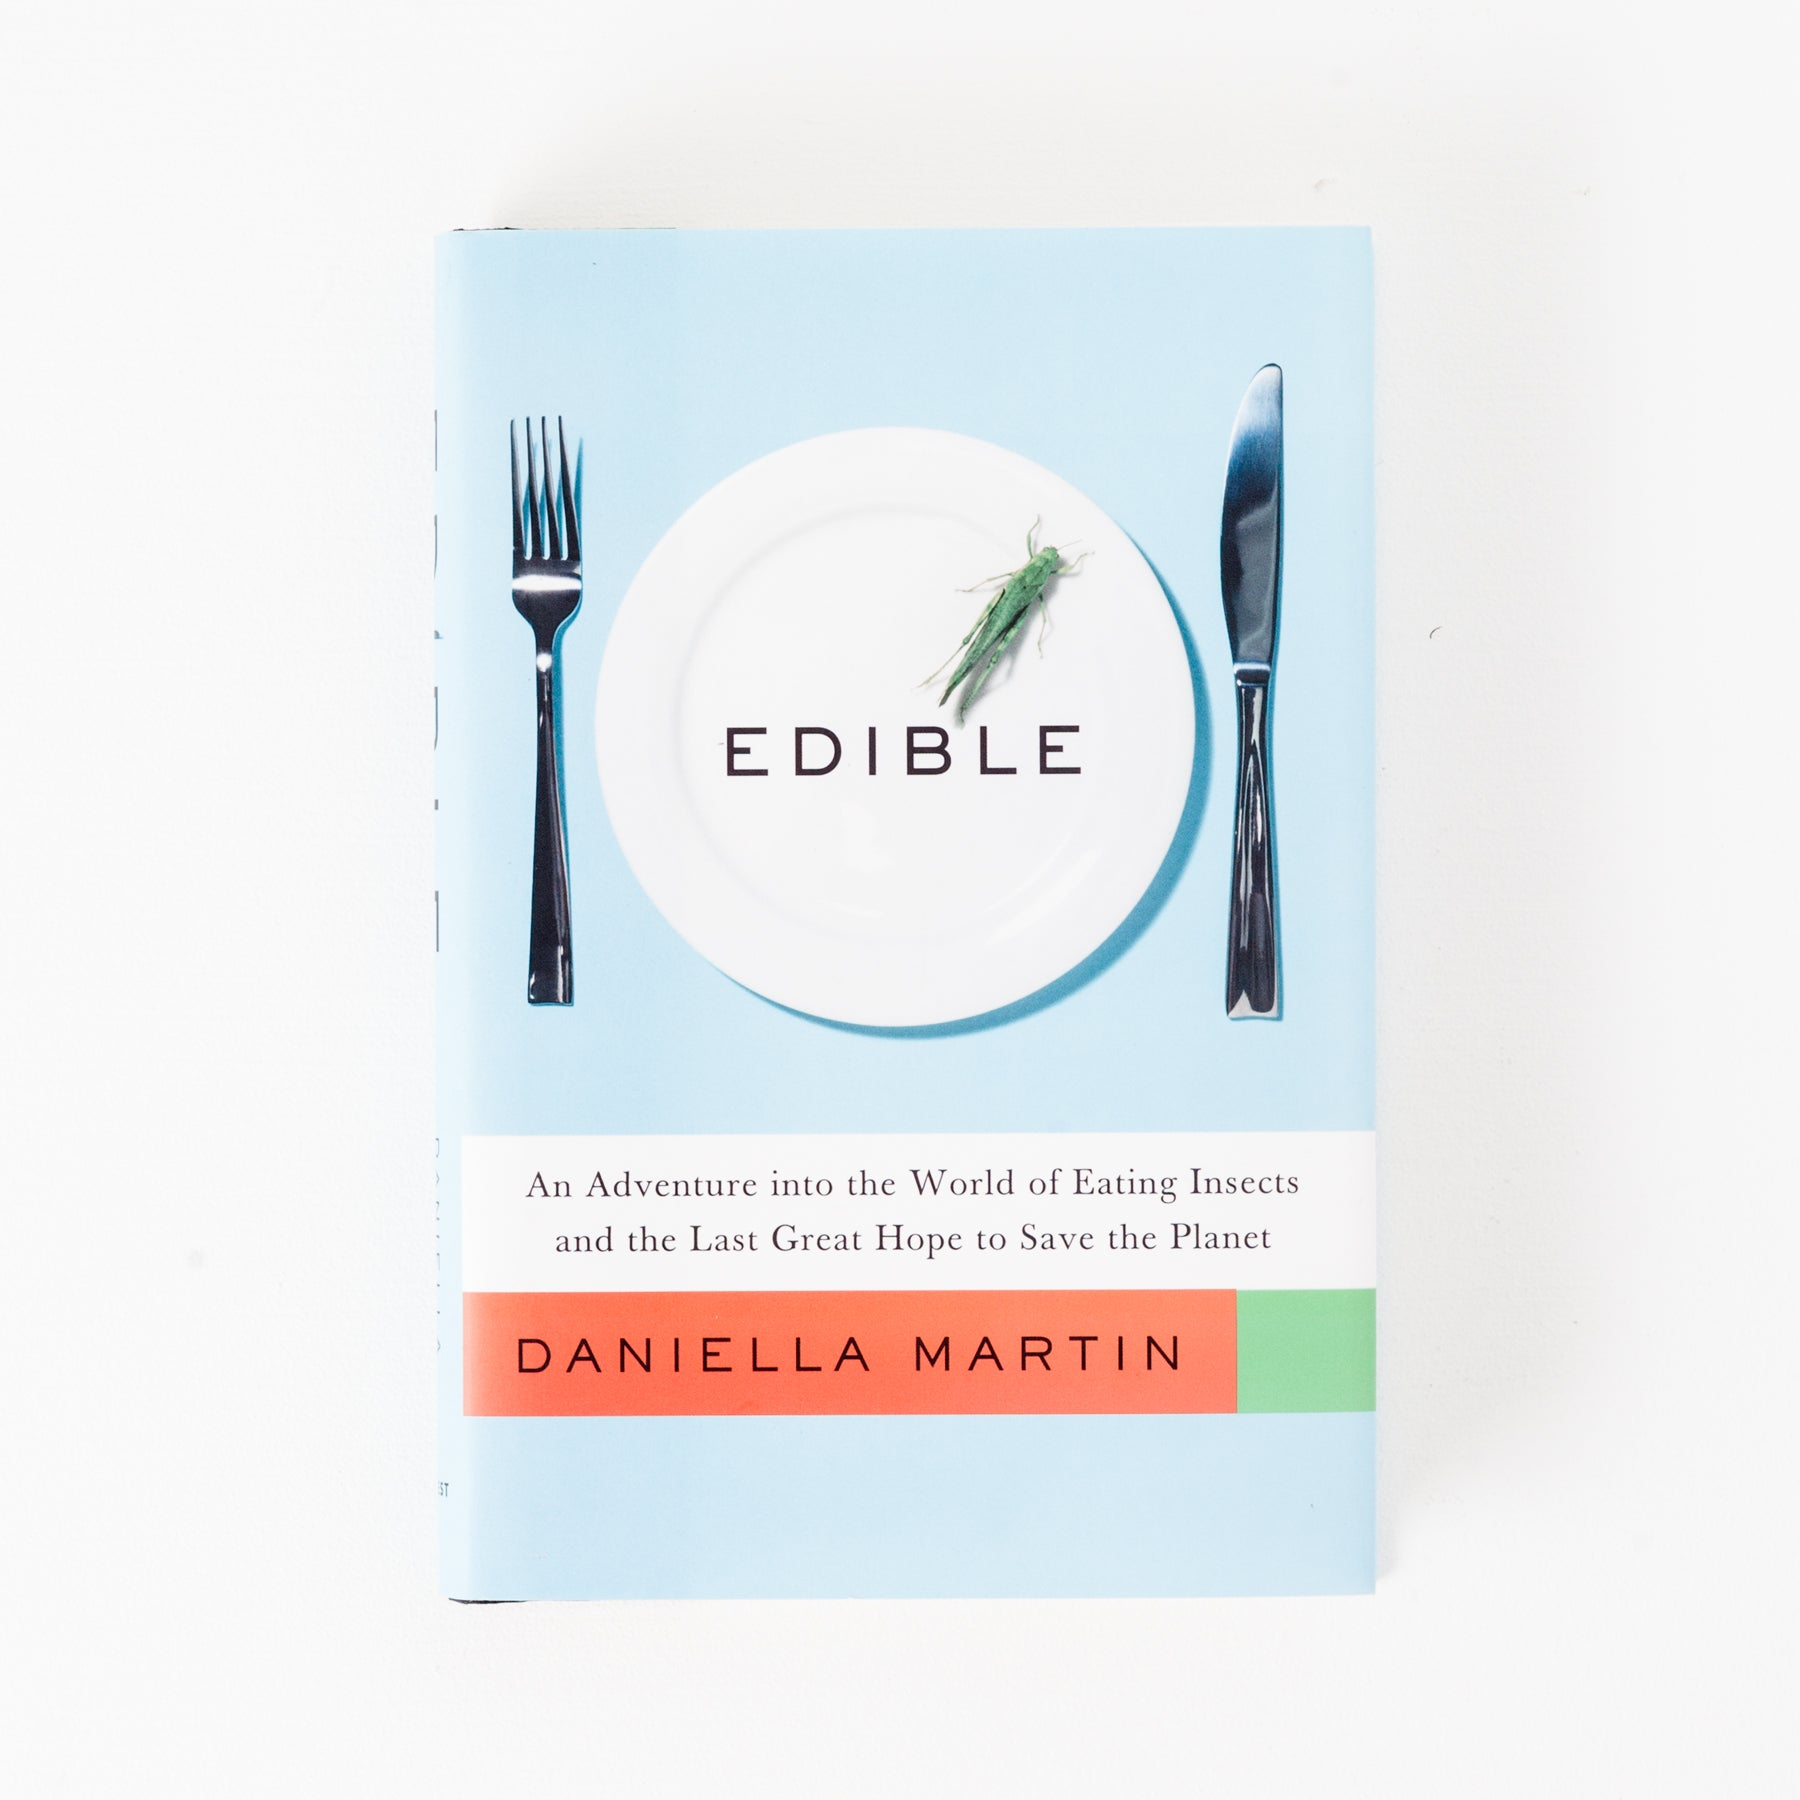 Edible: An Adventure into the World of Eating Insects and the Last Hope to Save the Planet